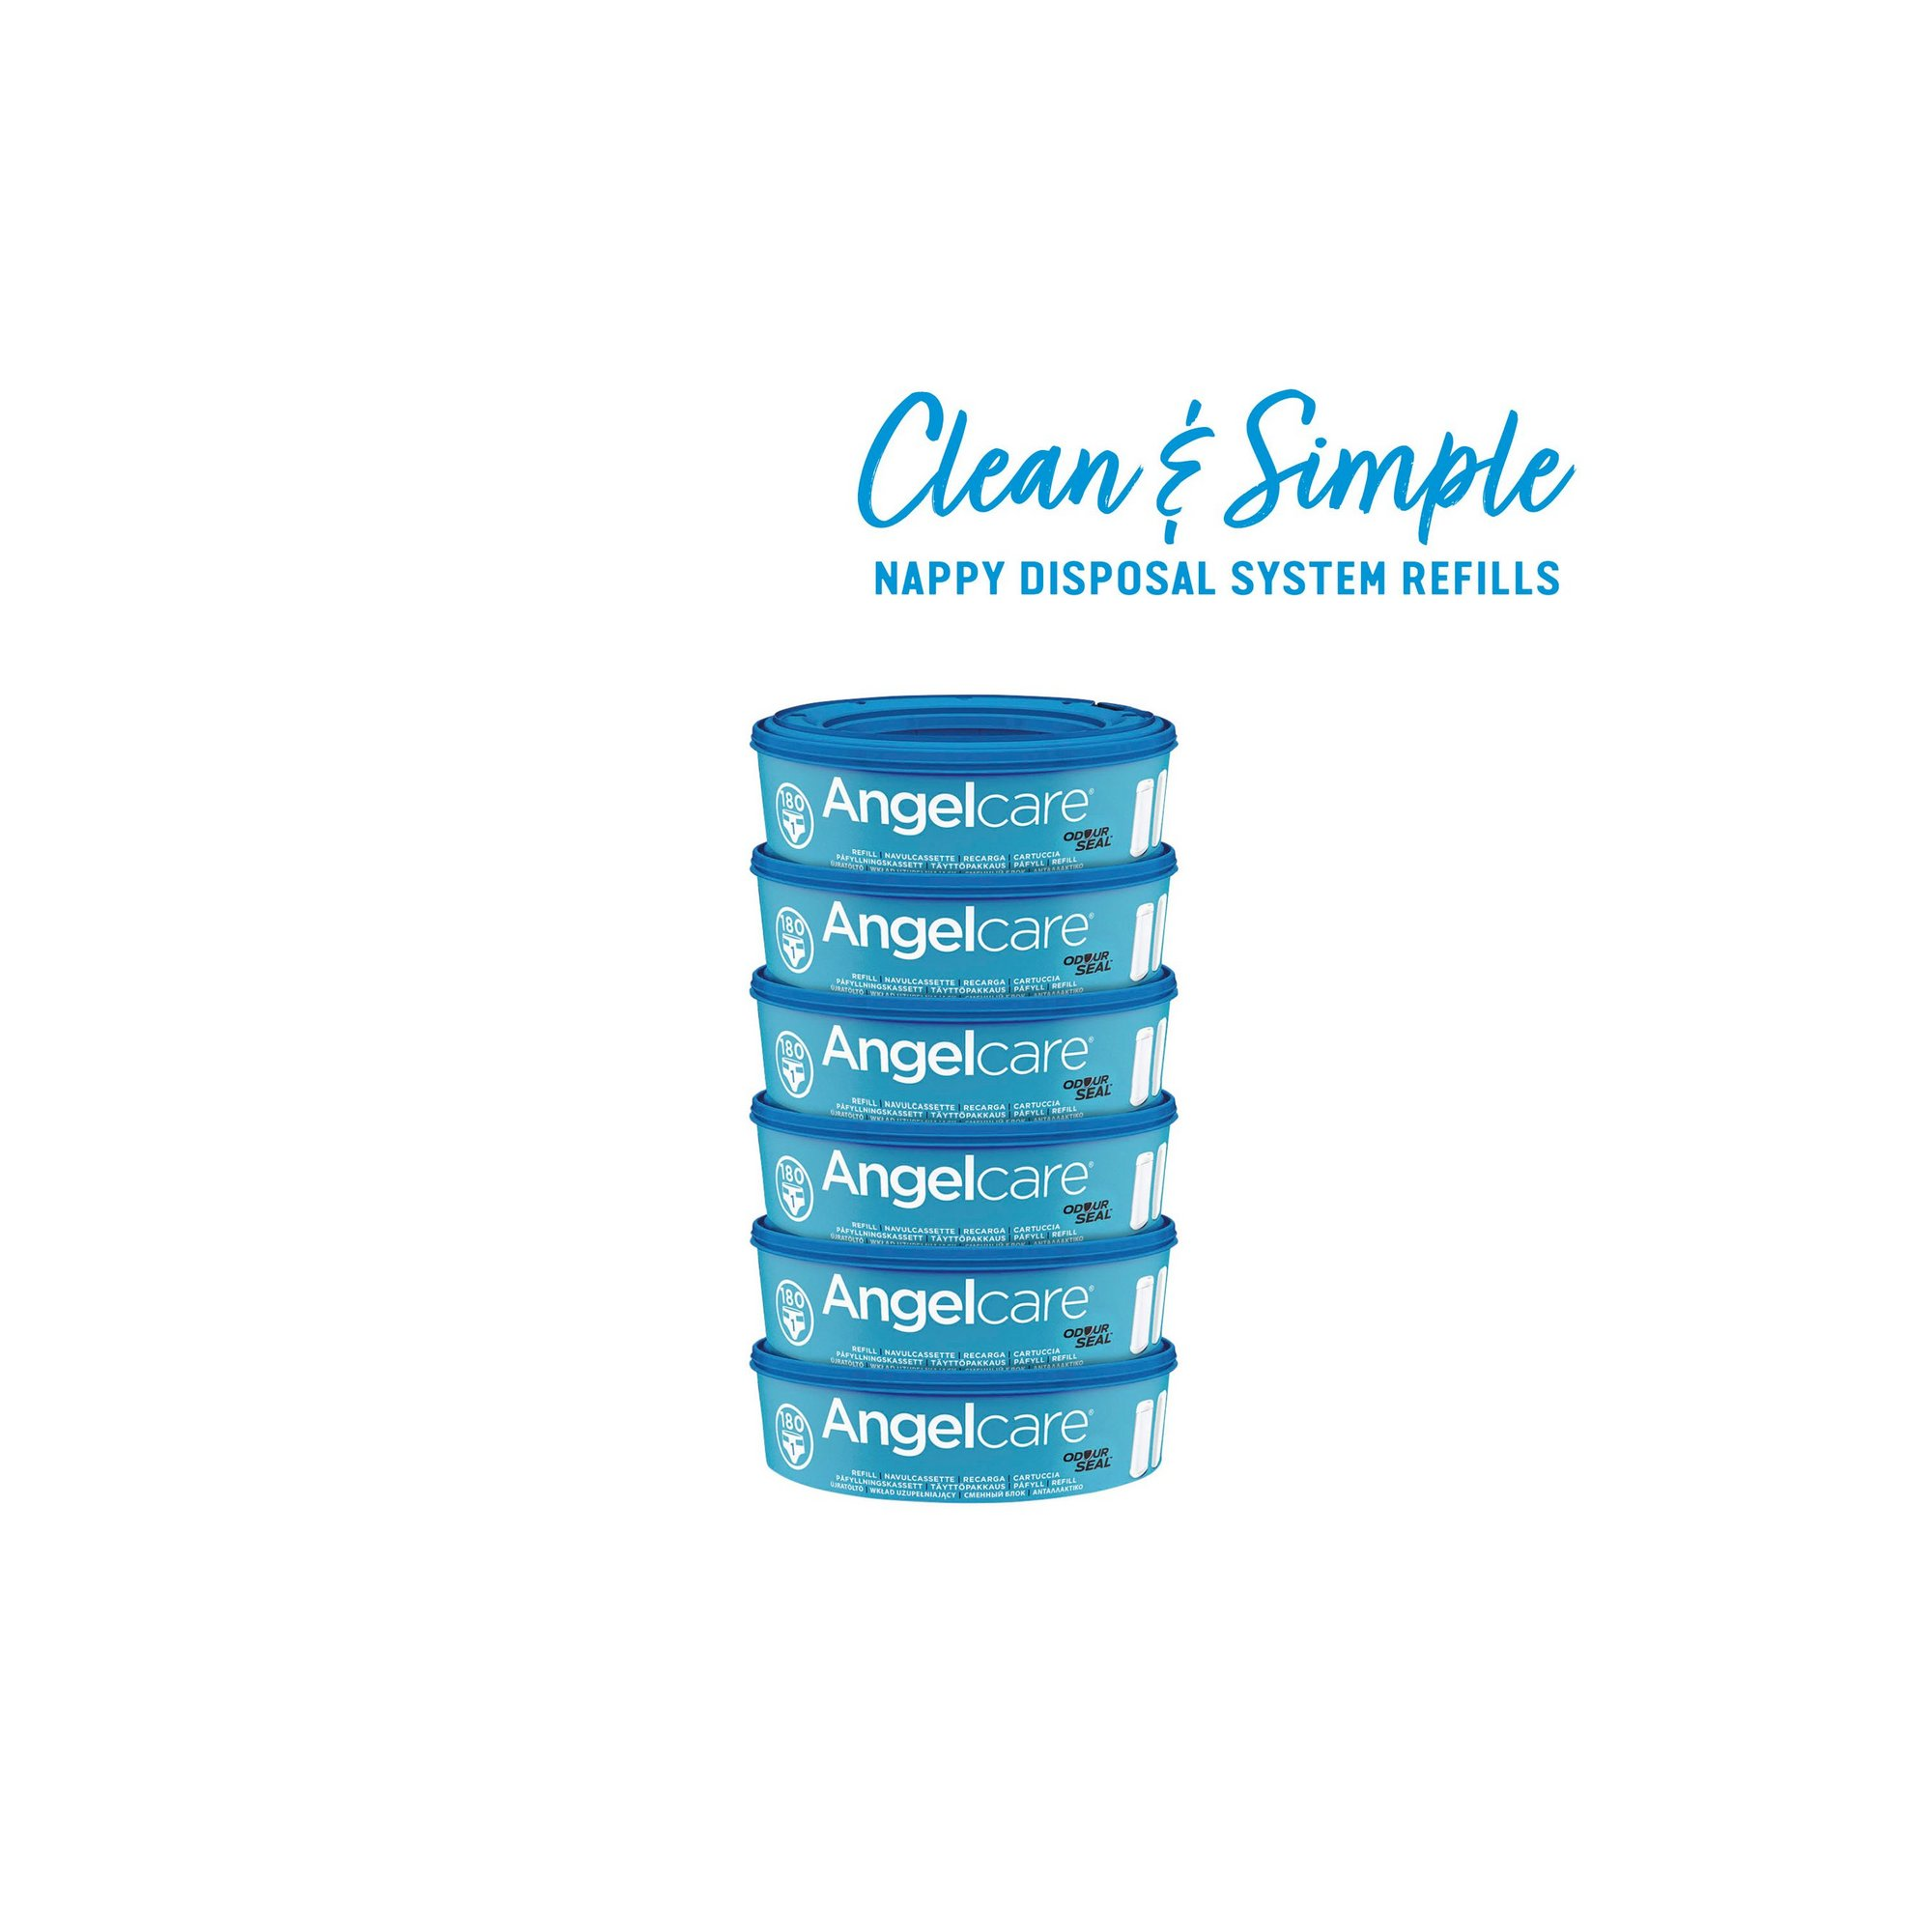 Image of Angelcare Nappy Disposal System Refill Cassettes